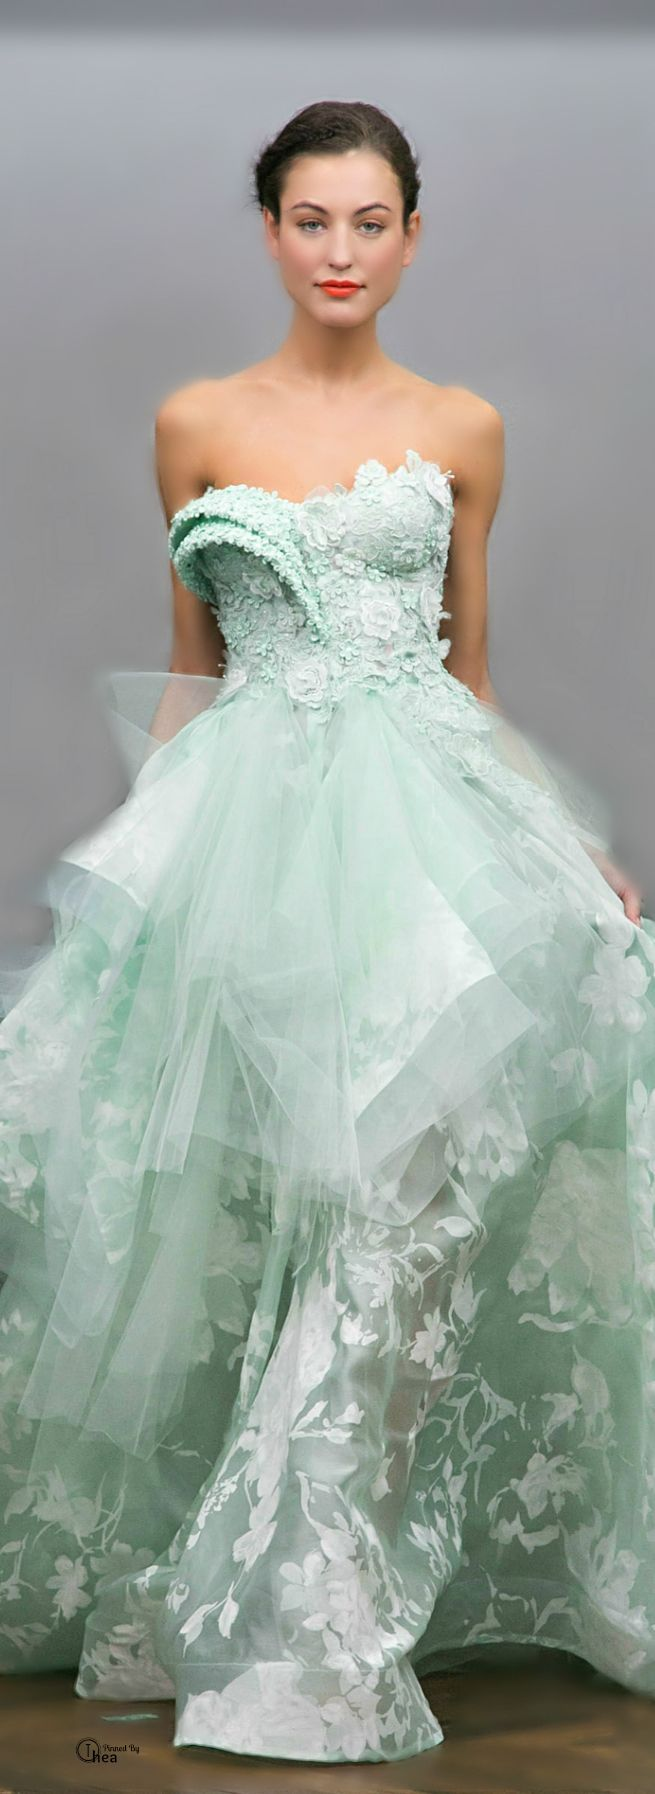 Colorful Wedding Gowns Buffalo Ny Mold - All Wedding Dresses ...